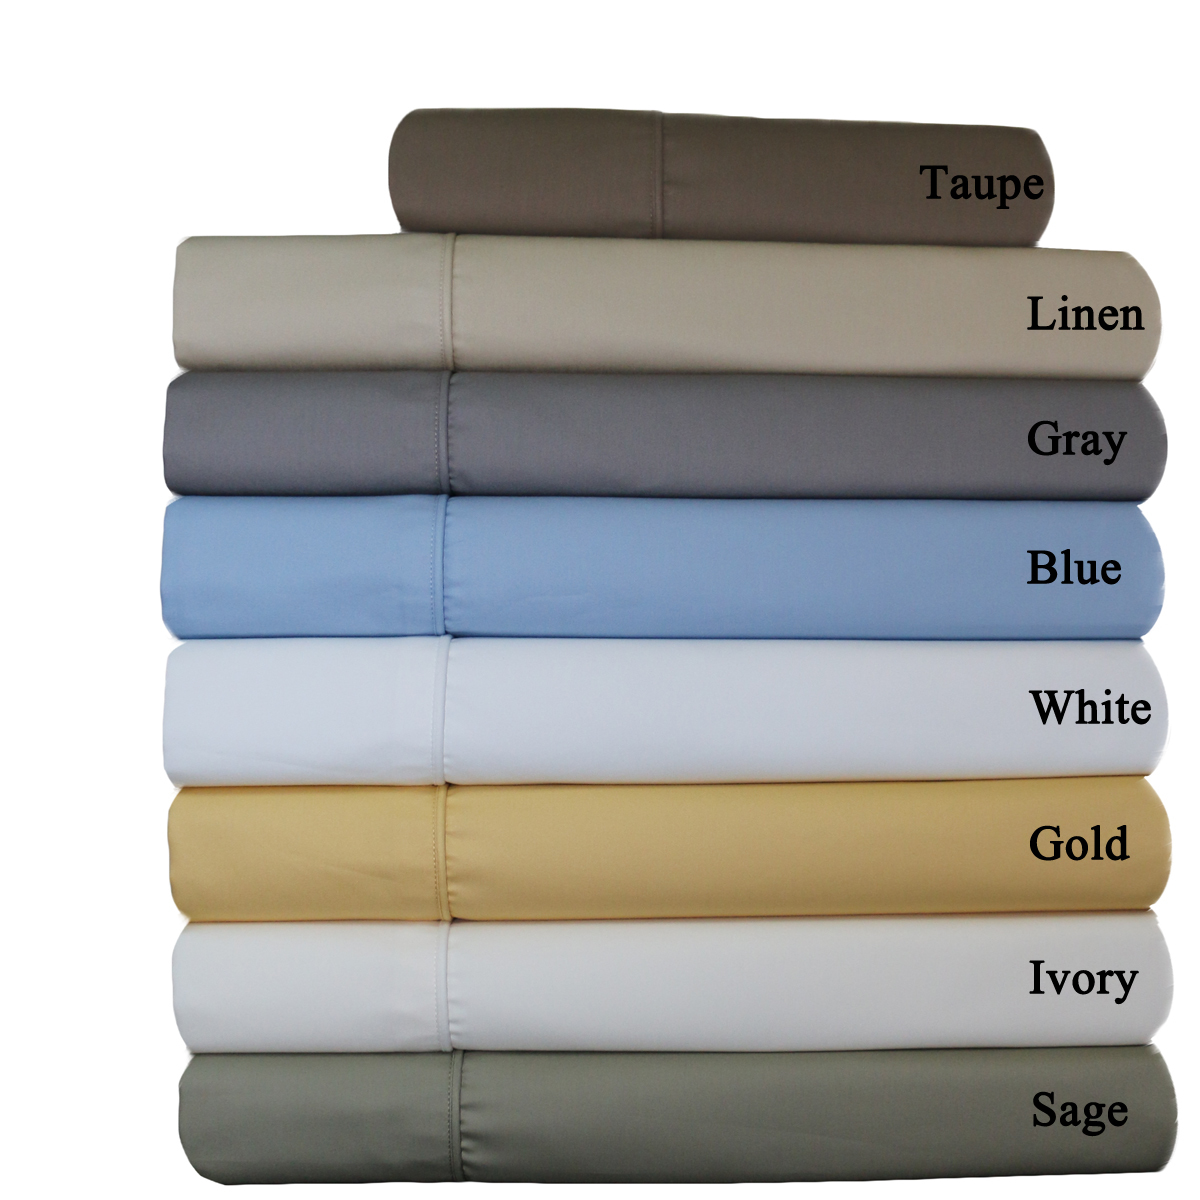 22 Inch Wrinkle Free Cotton Blend Sheets 650 Tc Solid